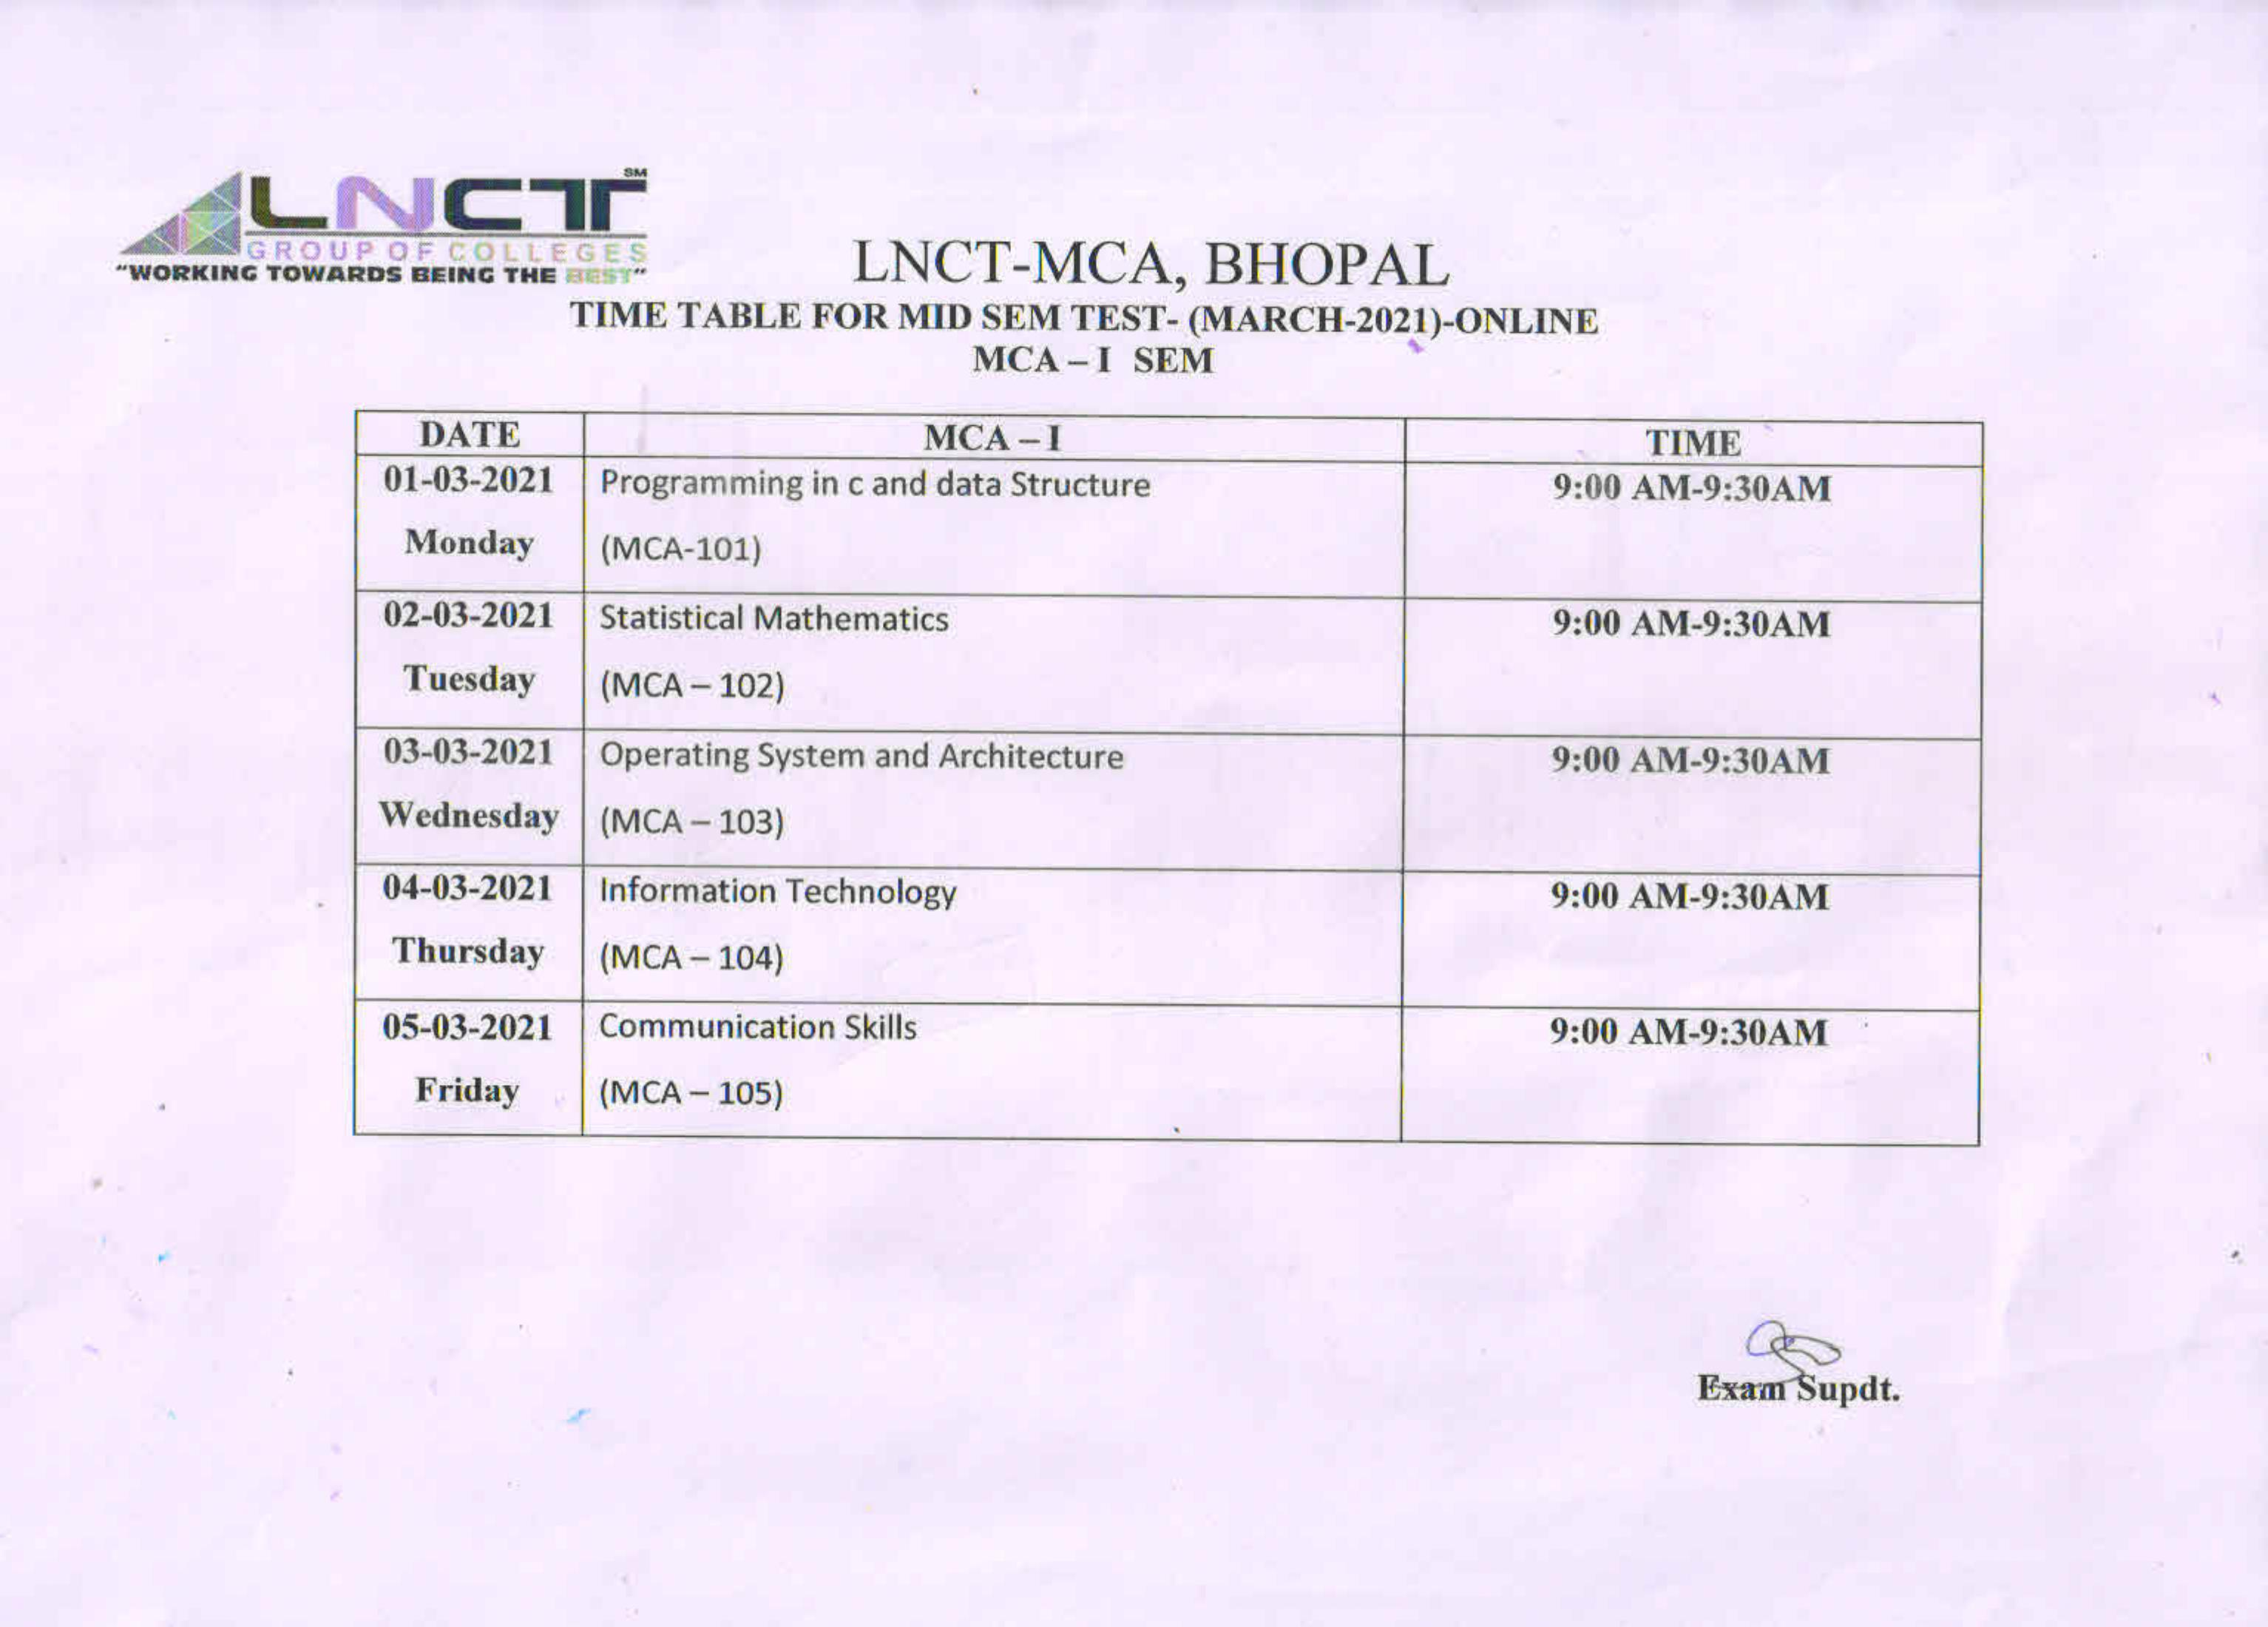 Time Table For MCA I SEM MID SEM Test March 2021 1